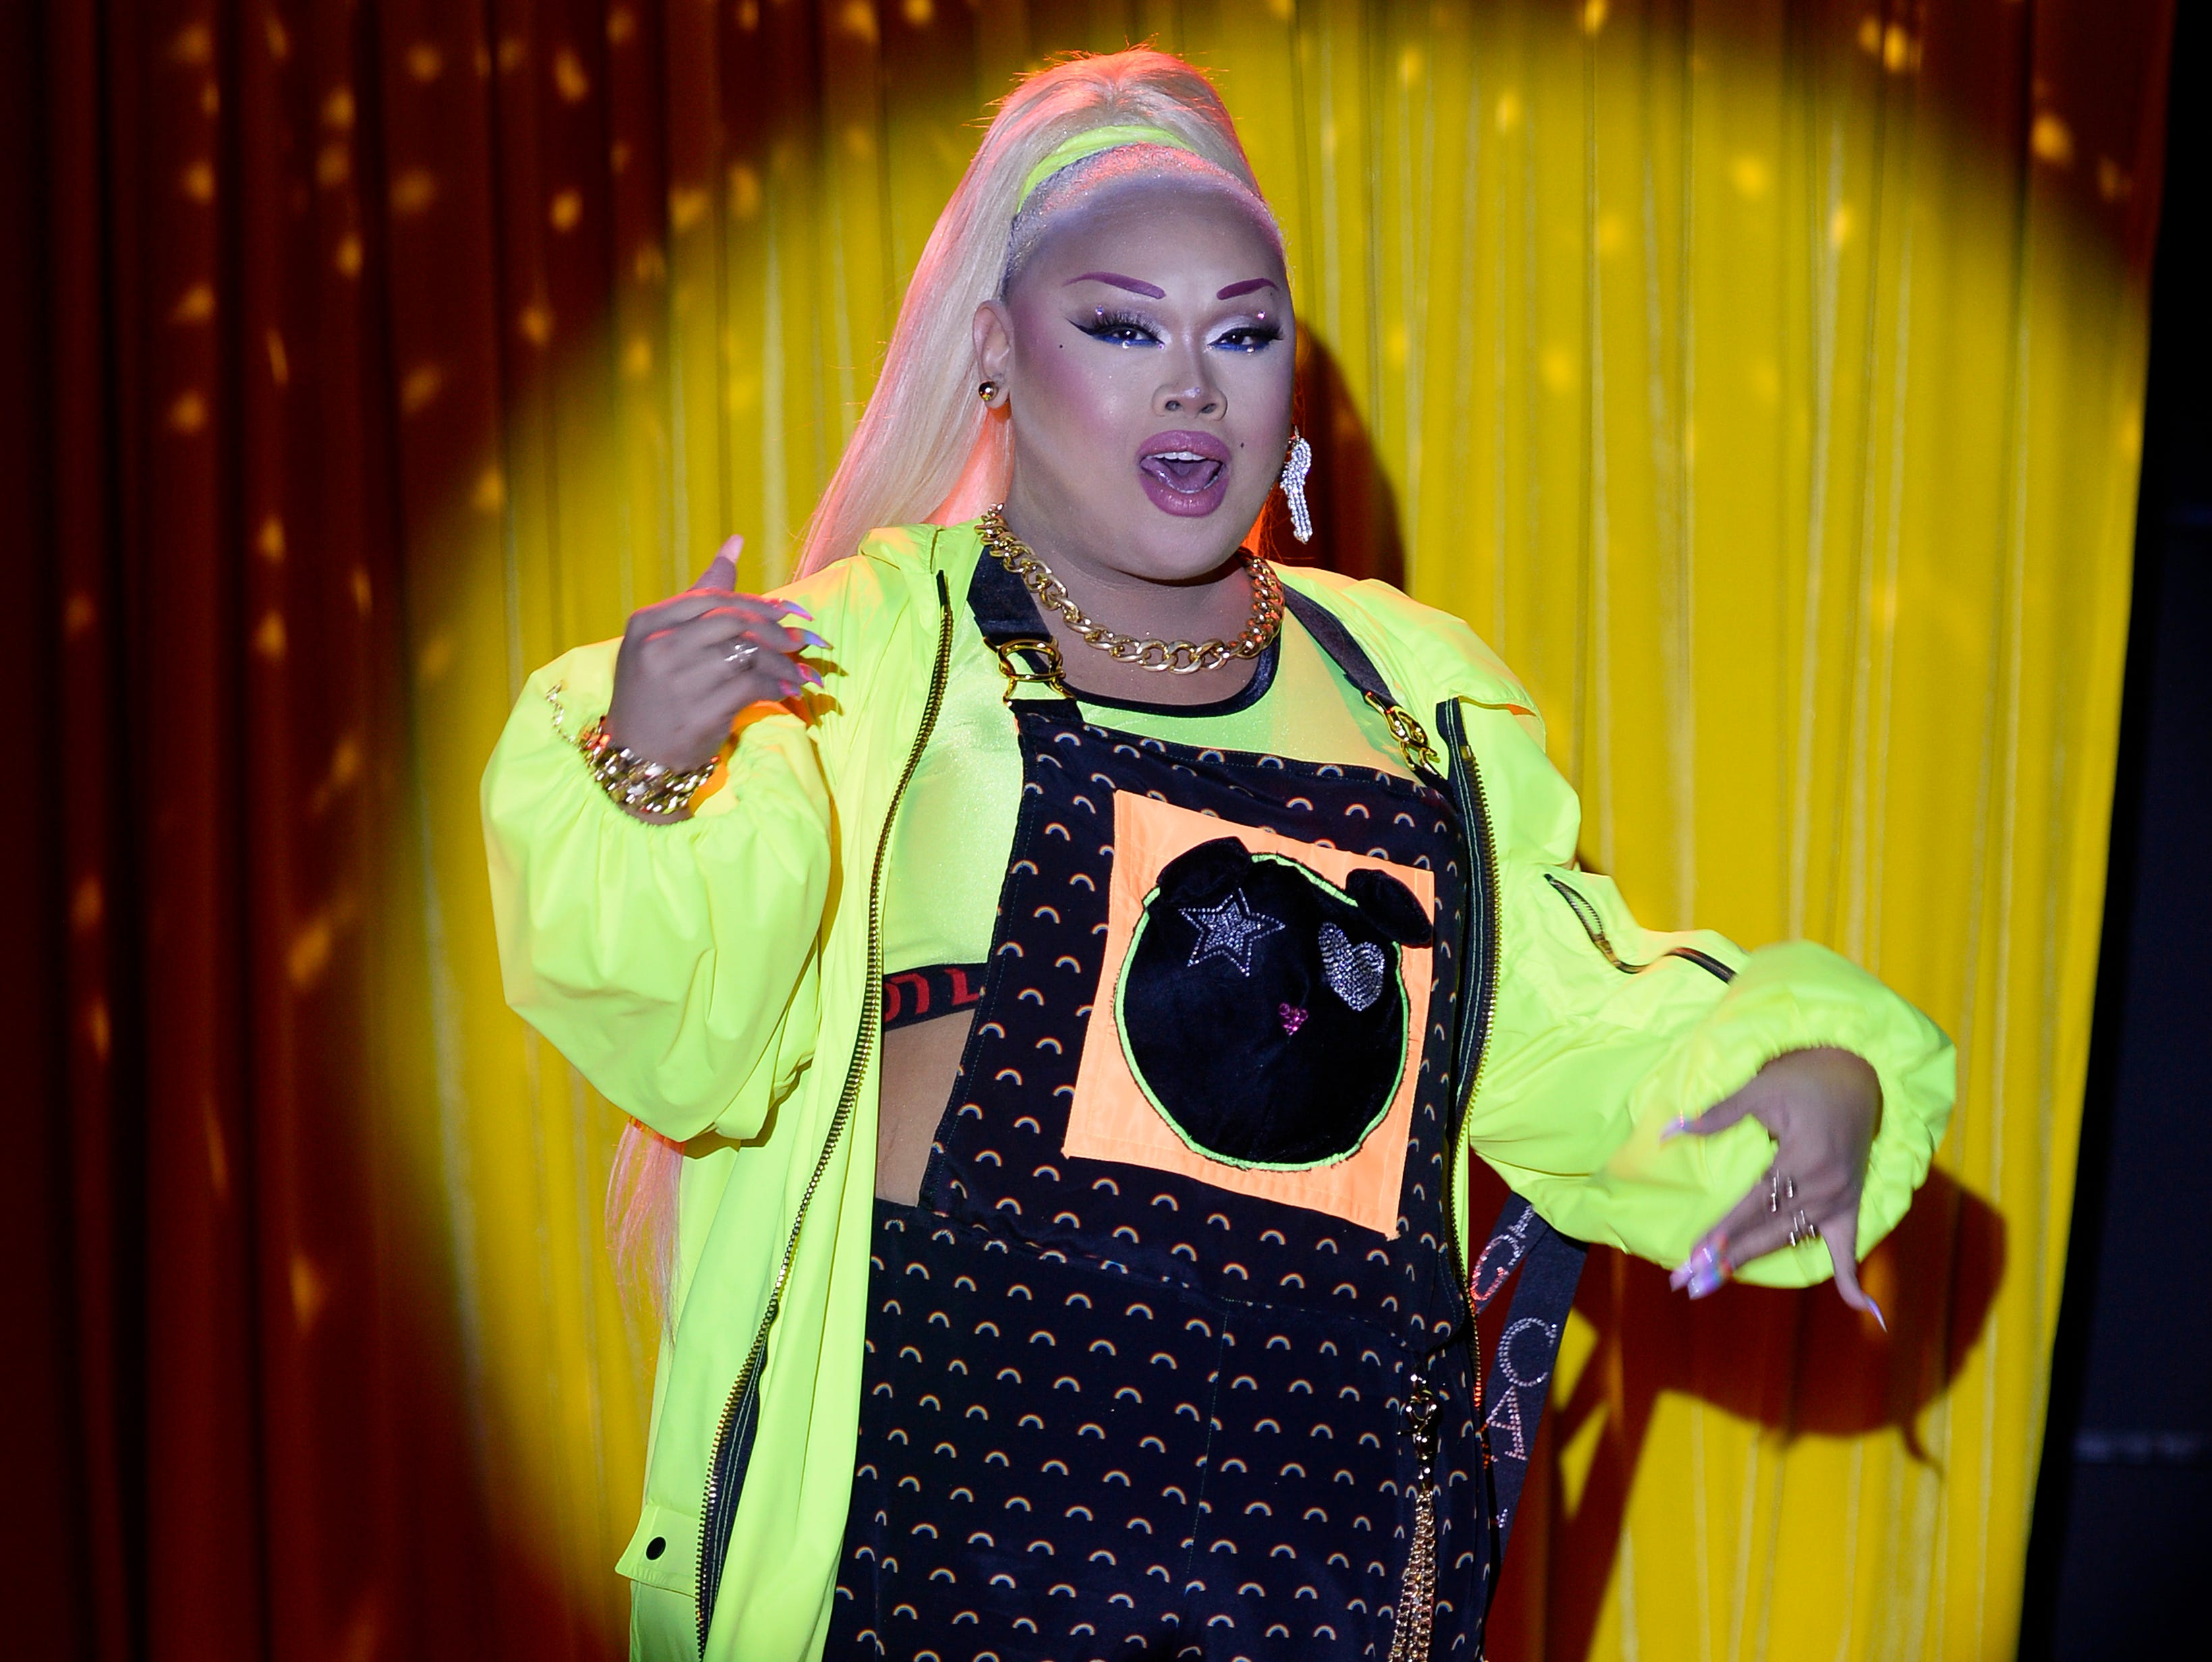 Jiggly Caliente also walked the runway.